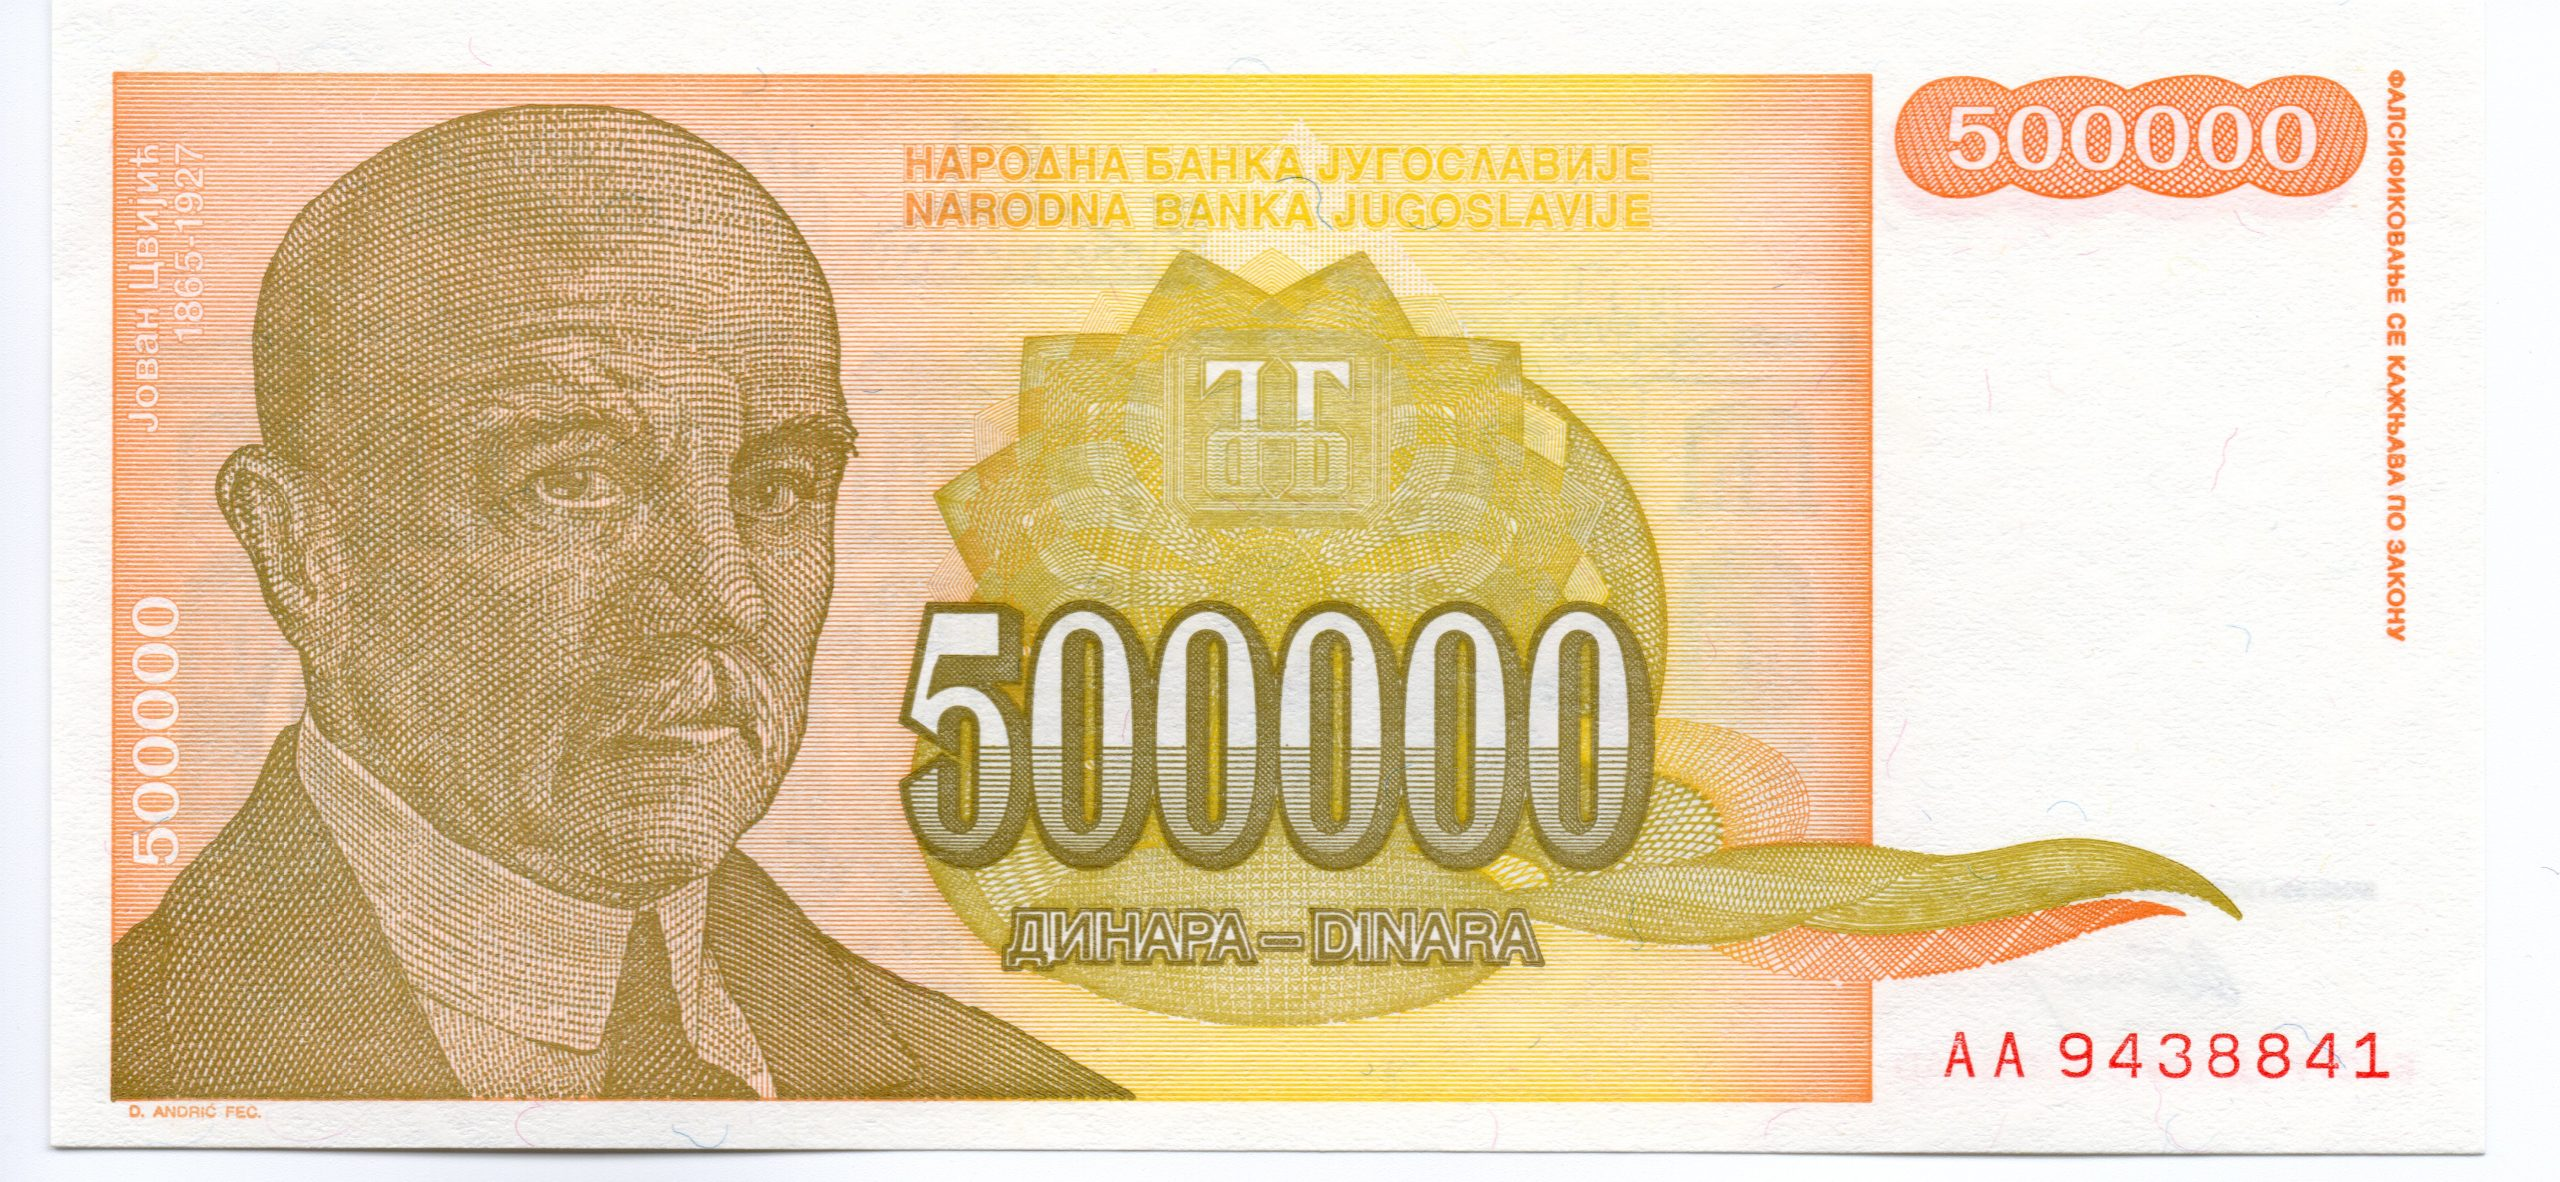 """500,000 DINARA 1994 P-143a YUGOSLAVIA UNC NOTE /""""FIRST CURRENCY REFORM/"""" ISSUE"""